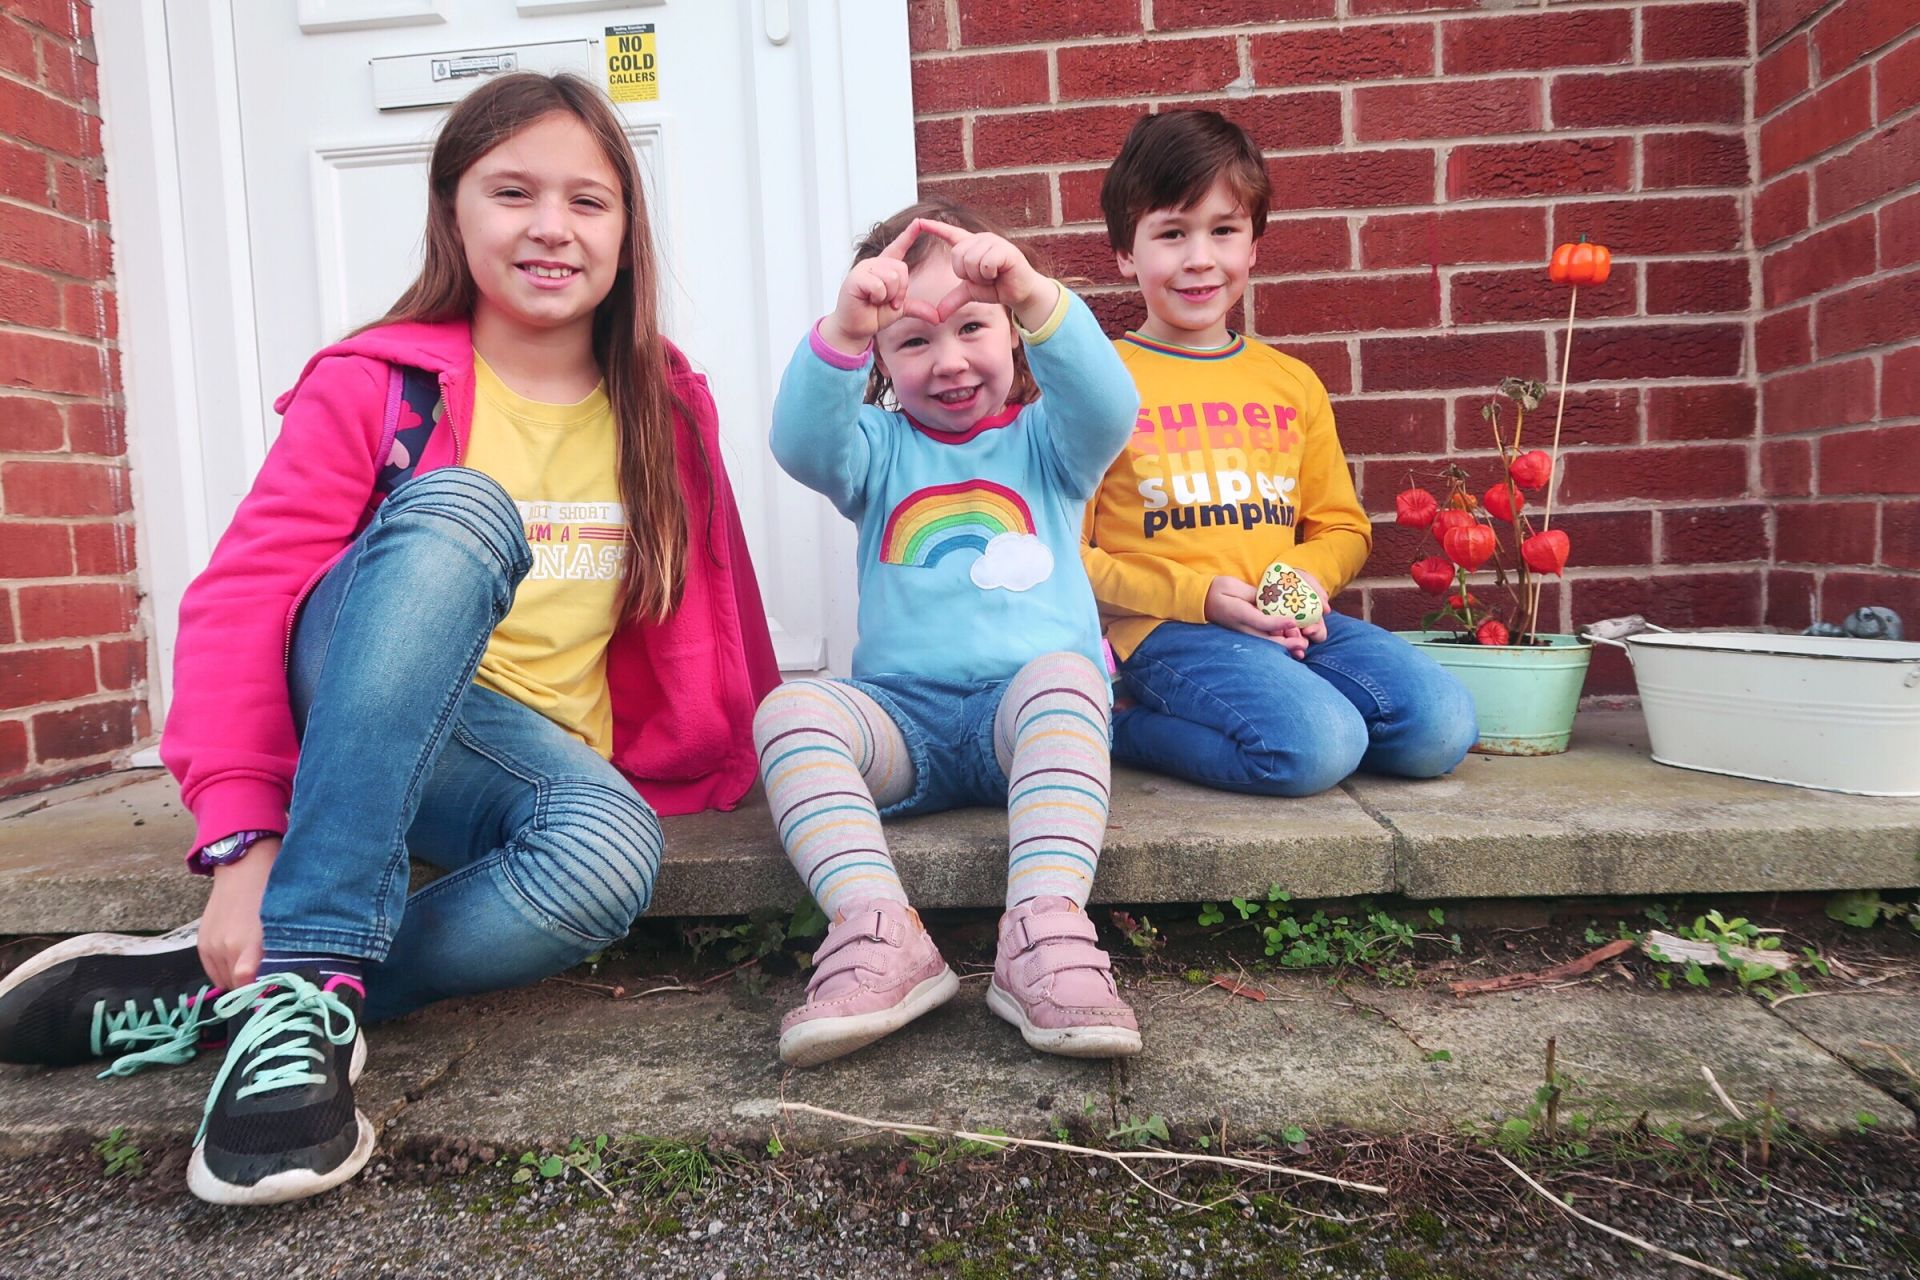 3 kids sat smiling on a step